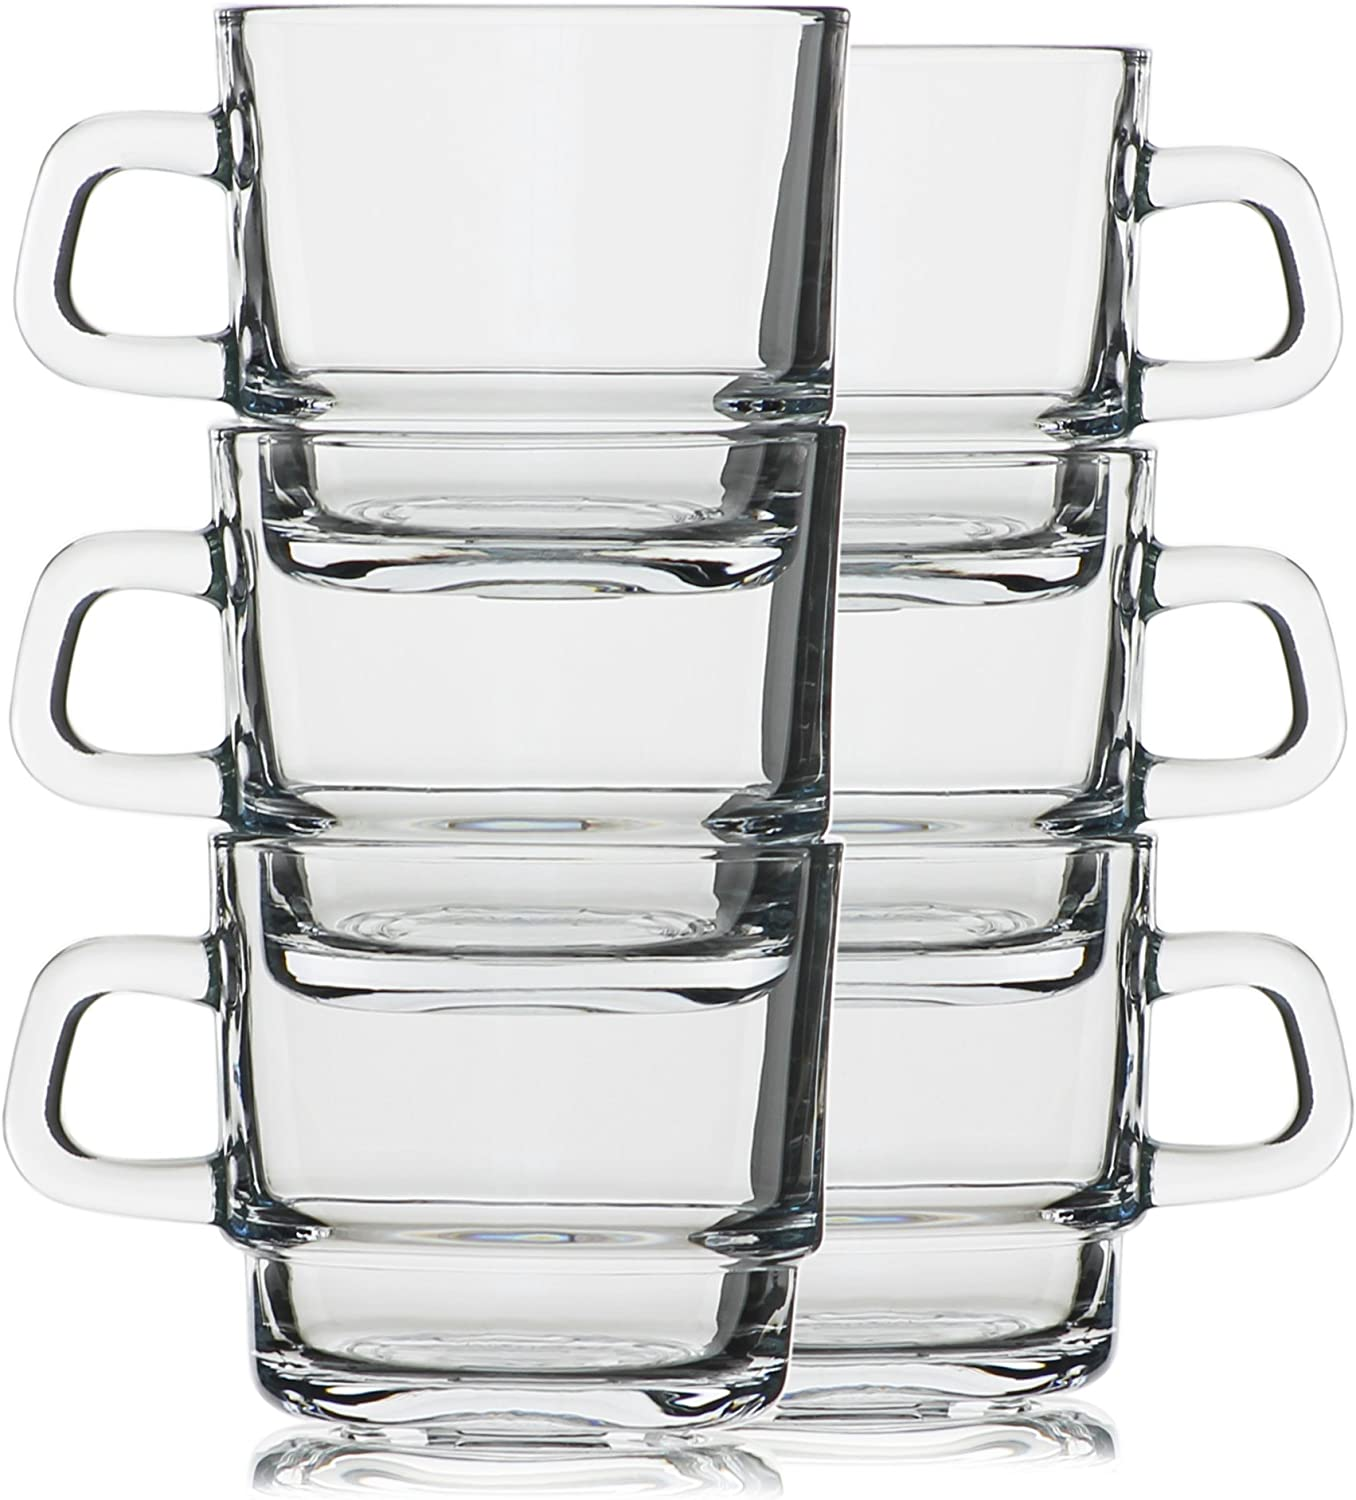 Hikari 7oz Espresso / Tea Stackable Glass Cups; Keeps Beverages Hot. Perfect for Nespresso, Coffee, Cappuccino or Any Other Short Drinks, Set of 6 (Gift Boxed)